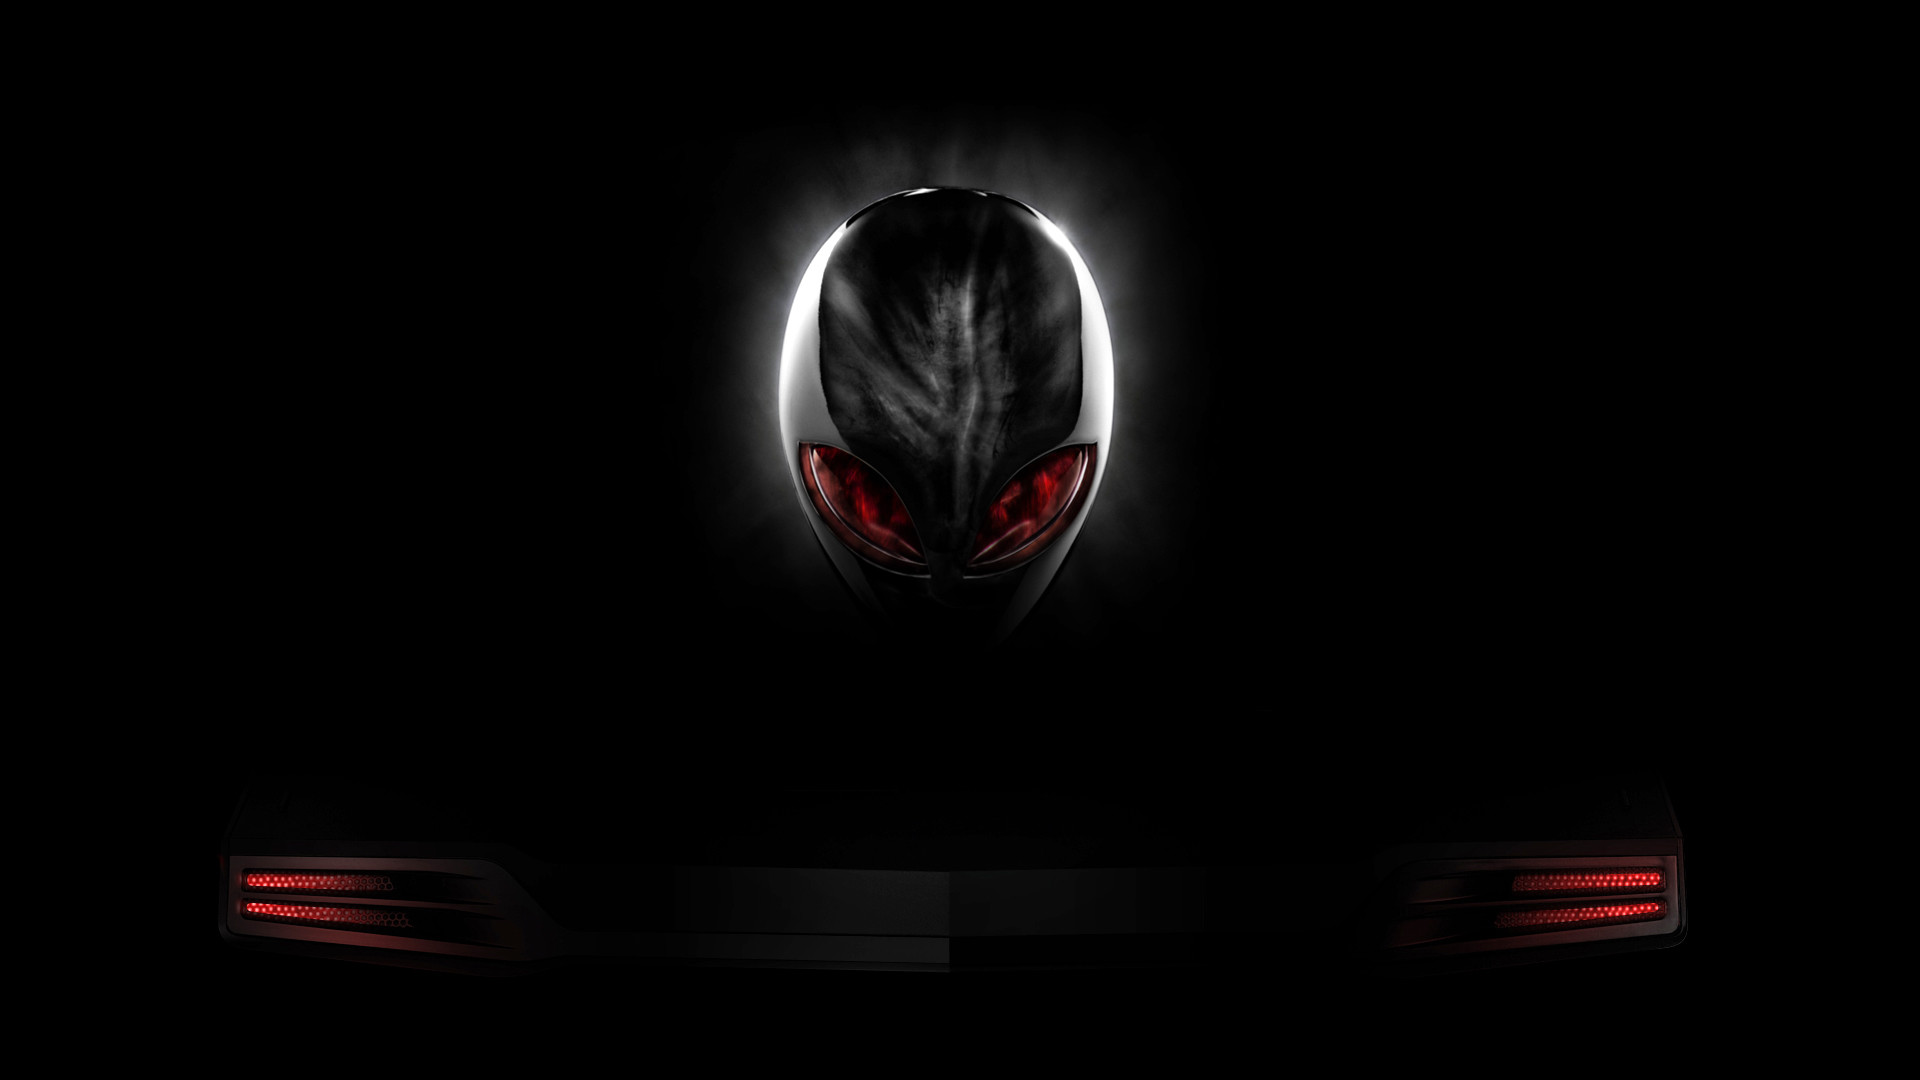 1920x1080 Red And Black Wallpaper 1080p Alienware red eyes logo black